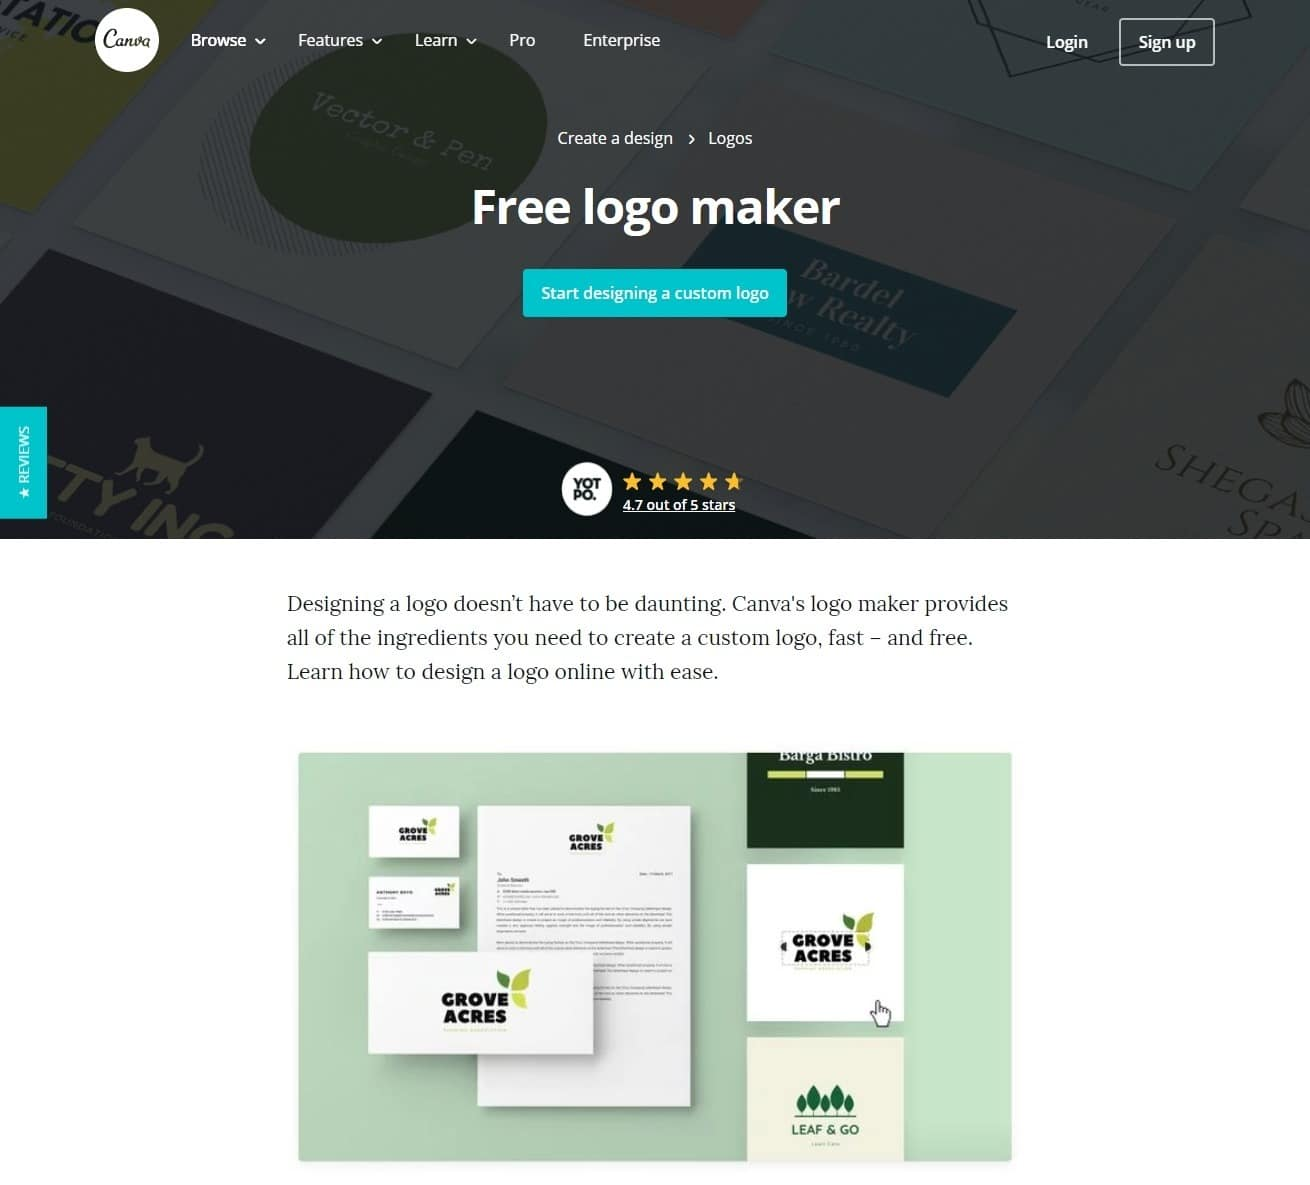 canva-logo-maker-overview1